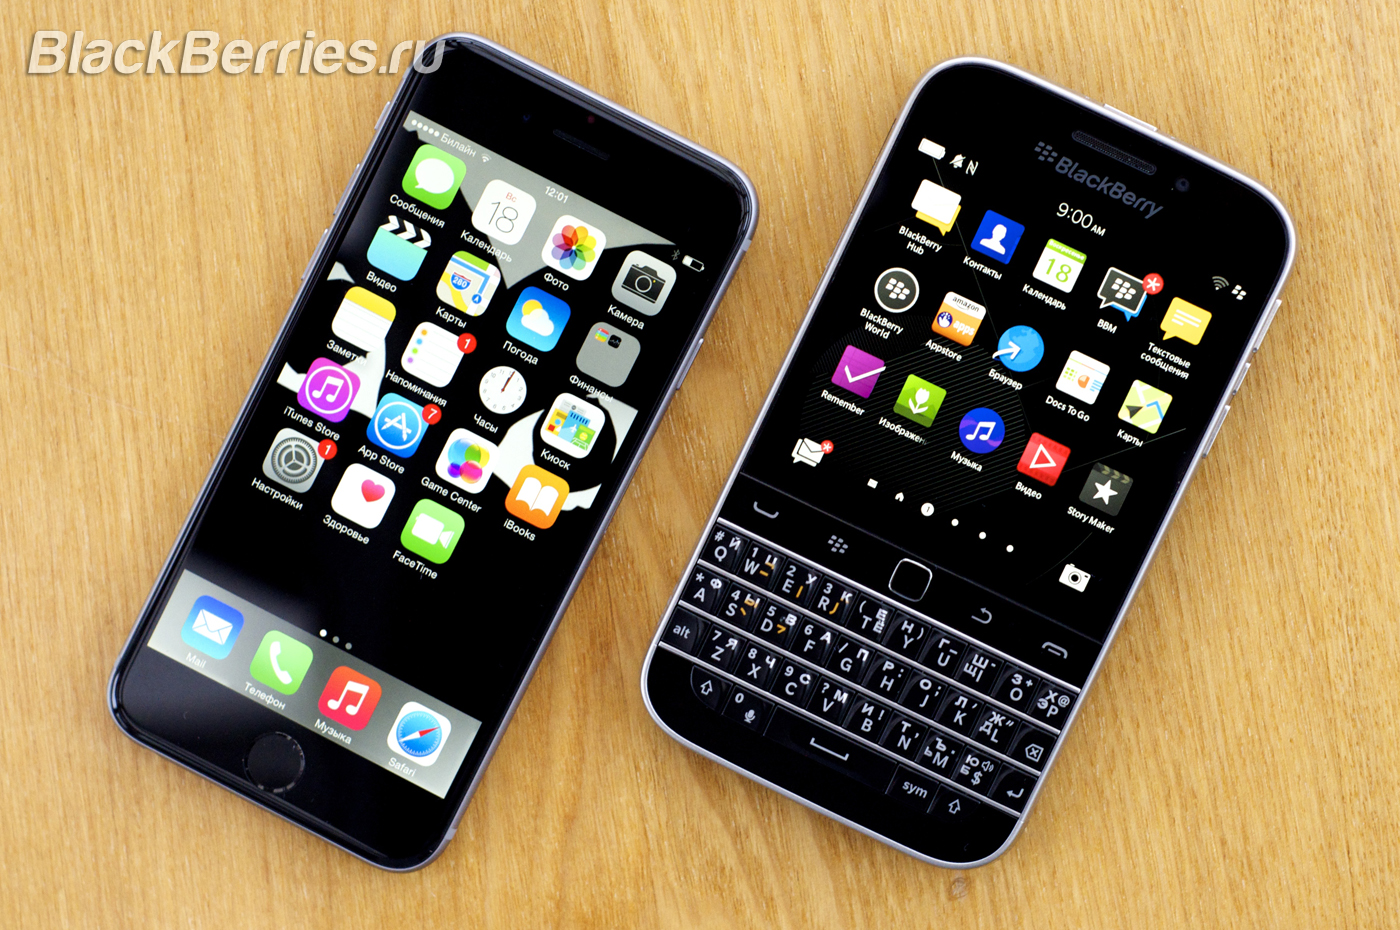 BlackBerry-Classic-vs-iPhone-Q10-Passport-36